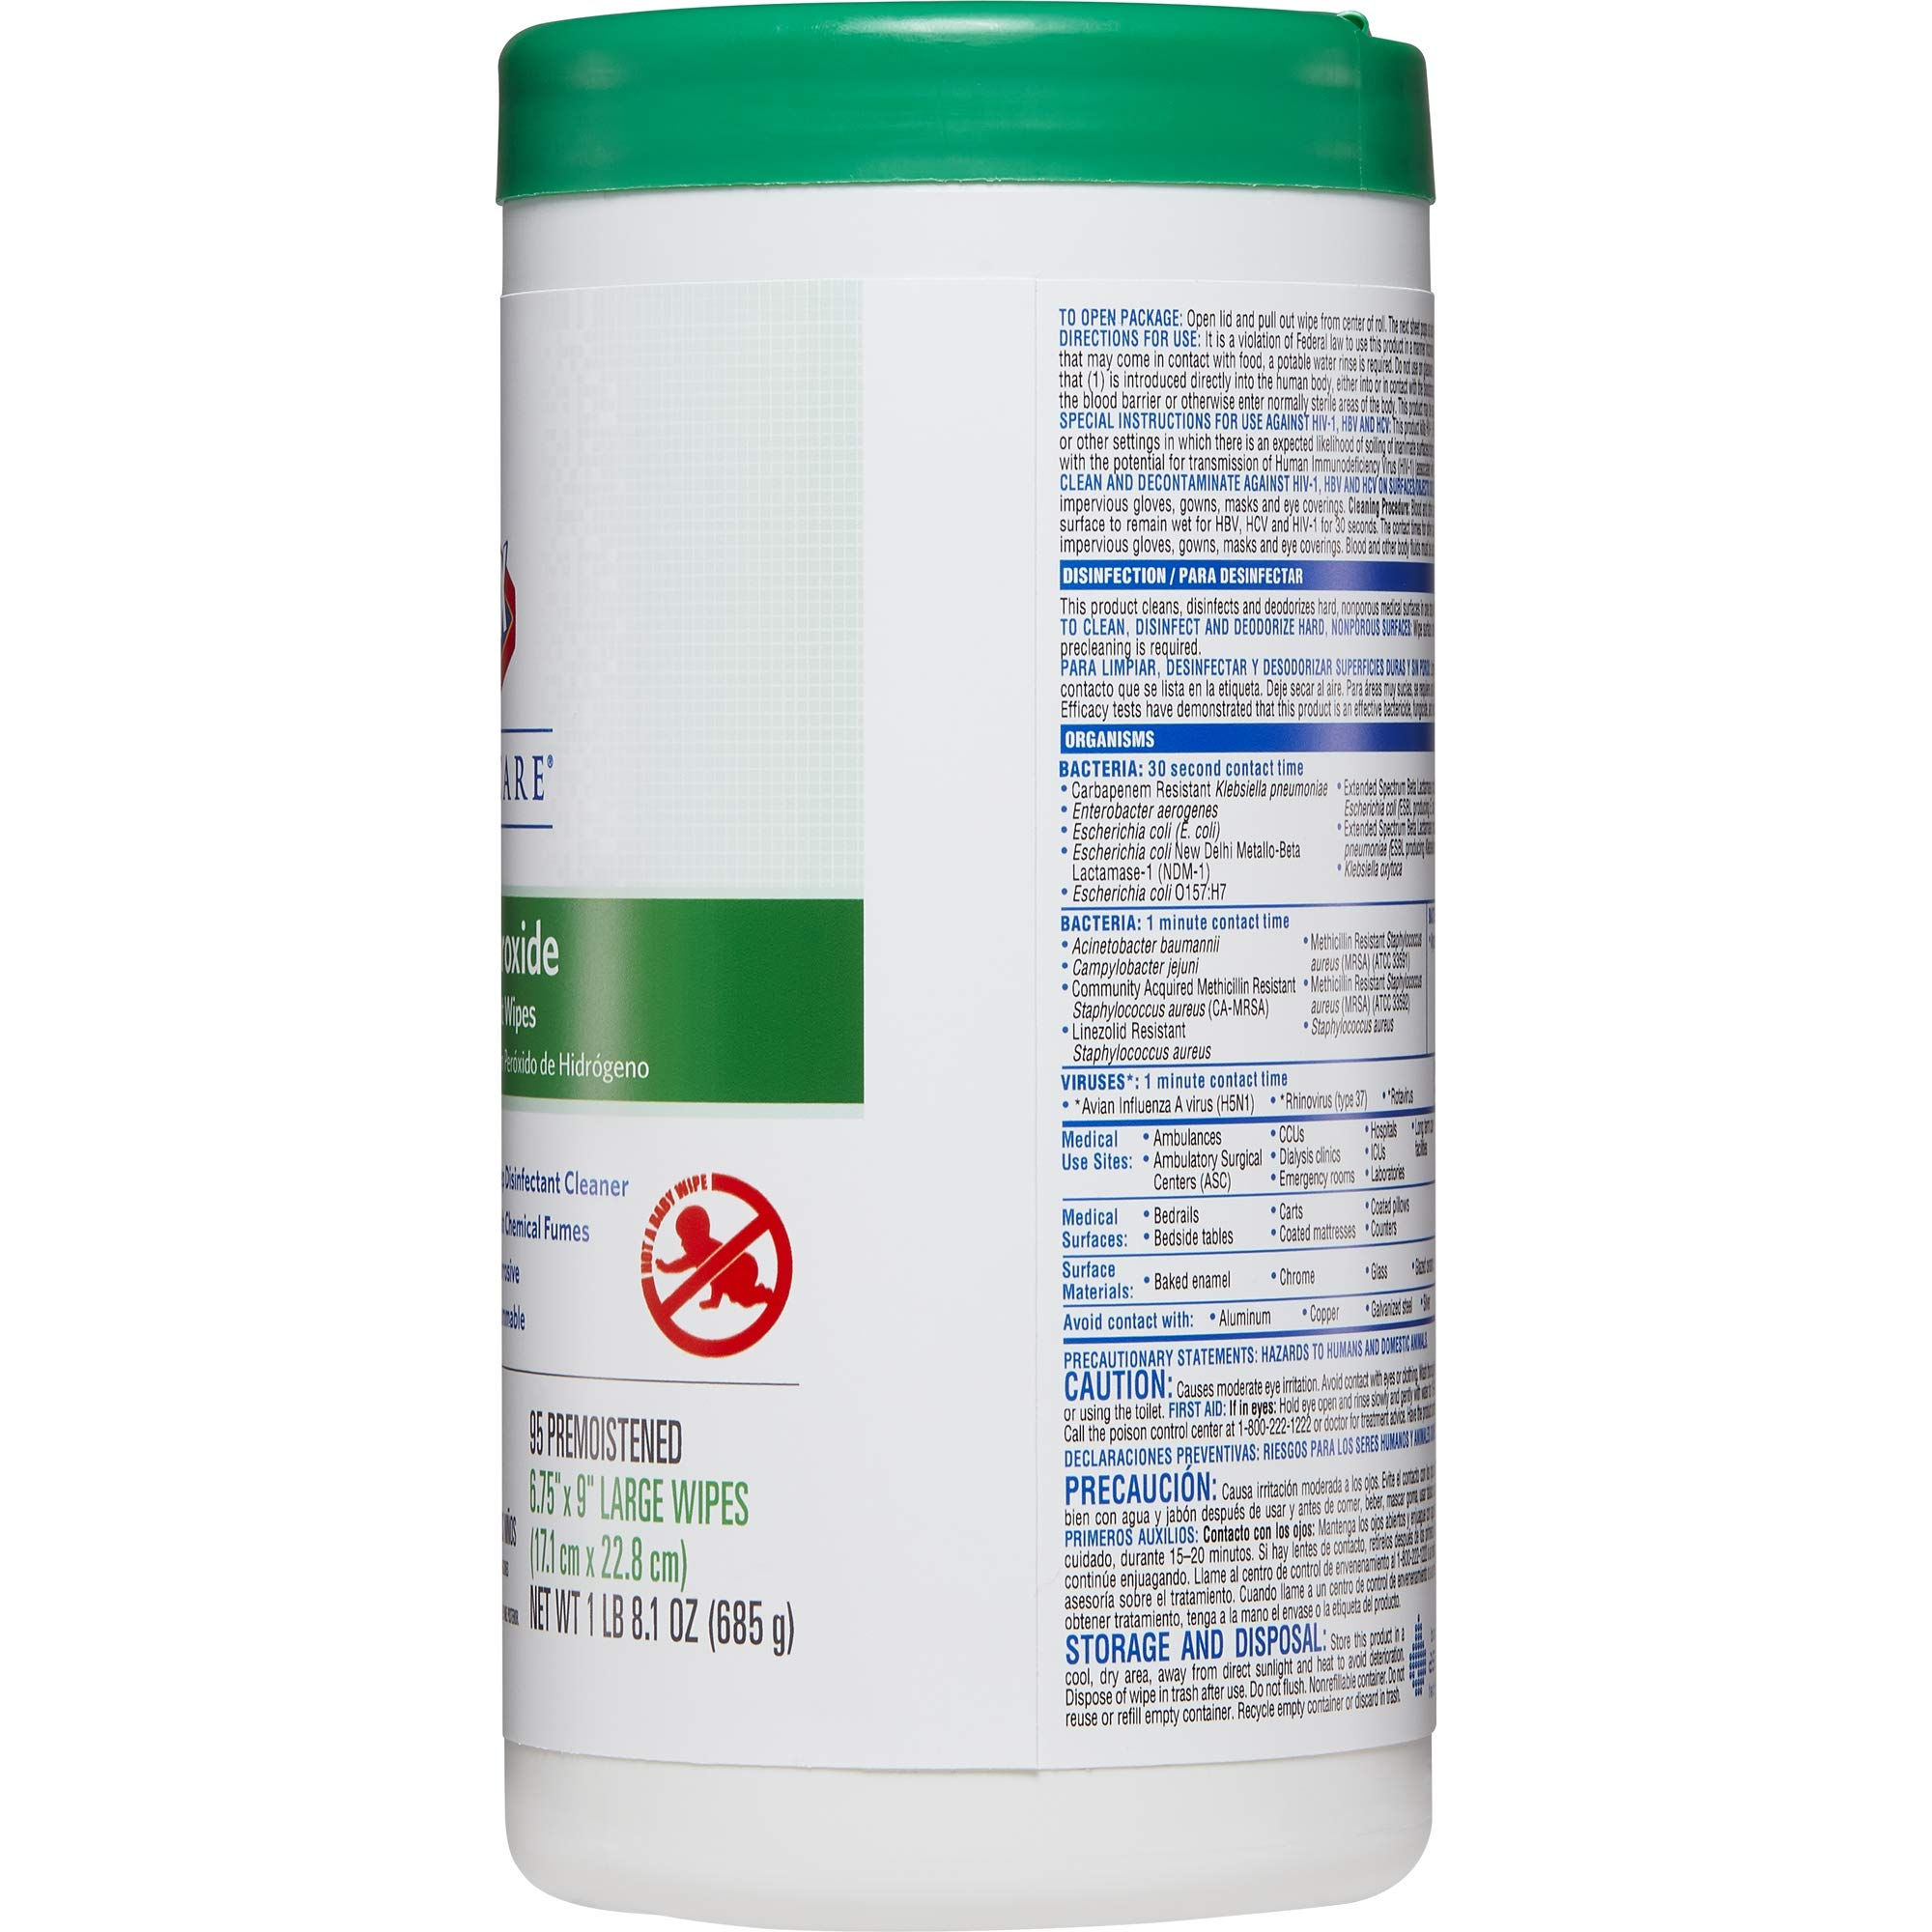 Clorox Healthcare Hydrogen Peroxide Cleaner Disinfectant Wipes, 95 Count Canister, 6 Canisters/Case (30824)